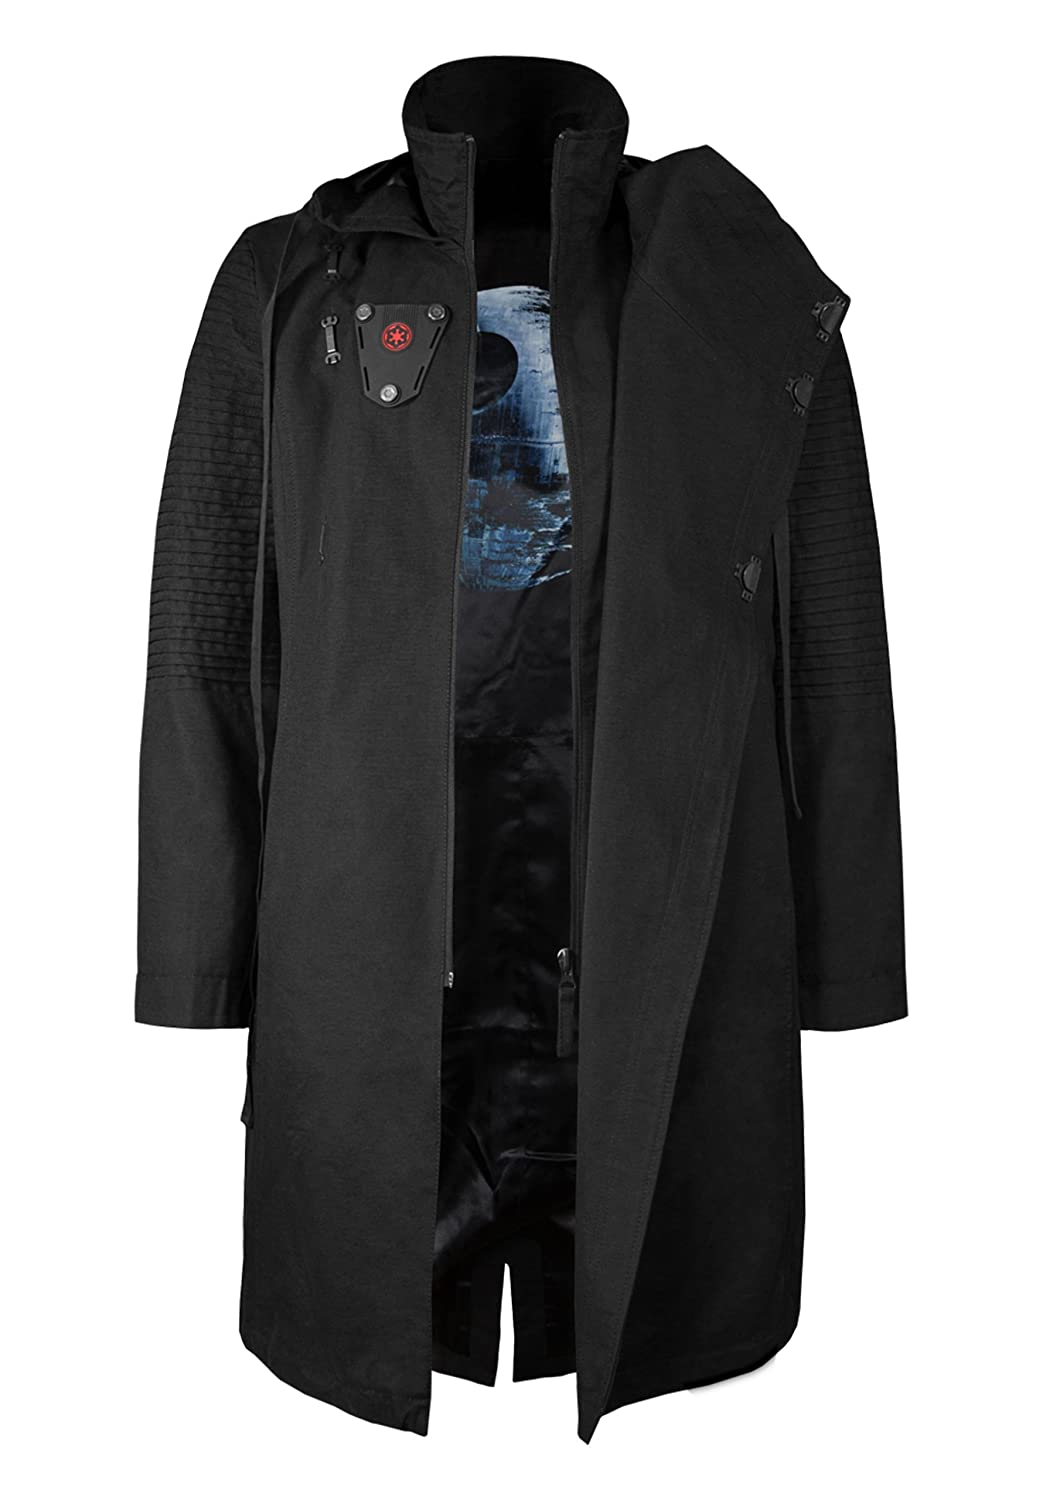 TALLA S. Musterbrand Star Wars Chaqueta Hombre Sith Lord Limited Edition Chaqueta Negro